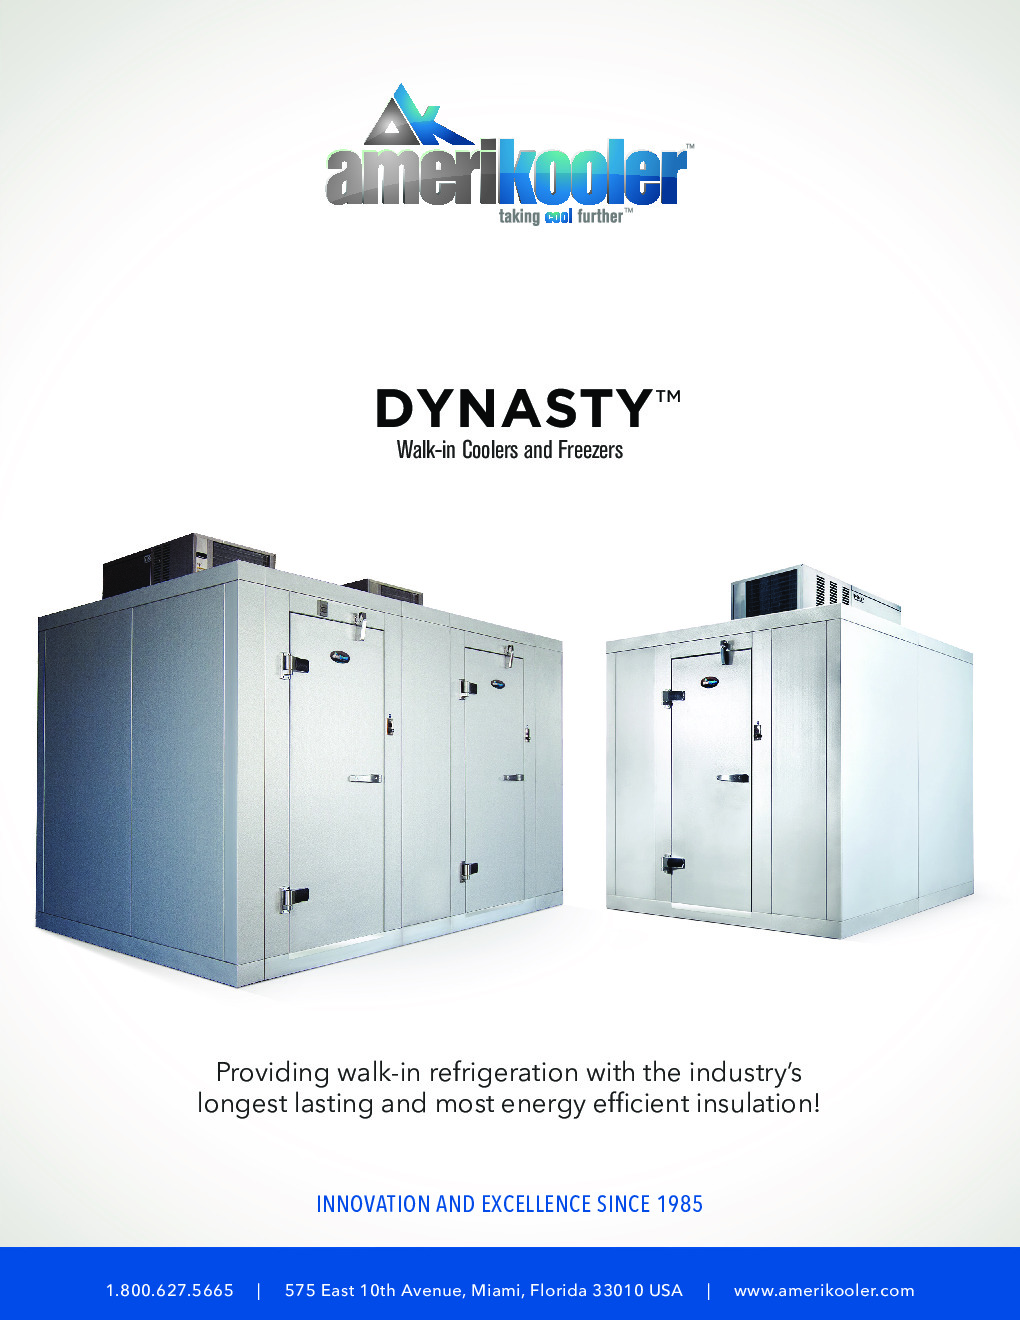 AmeriKooler DW071277N-4/8-SC 7' X 12' Walk-In Cooler, 8' L Cooler without Floor and 4' L Freezer, Self Contained